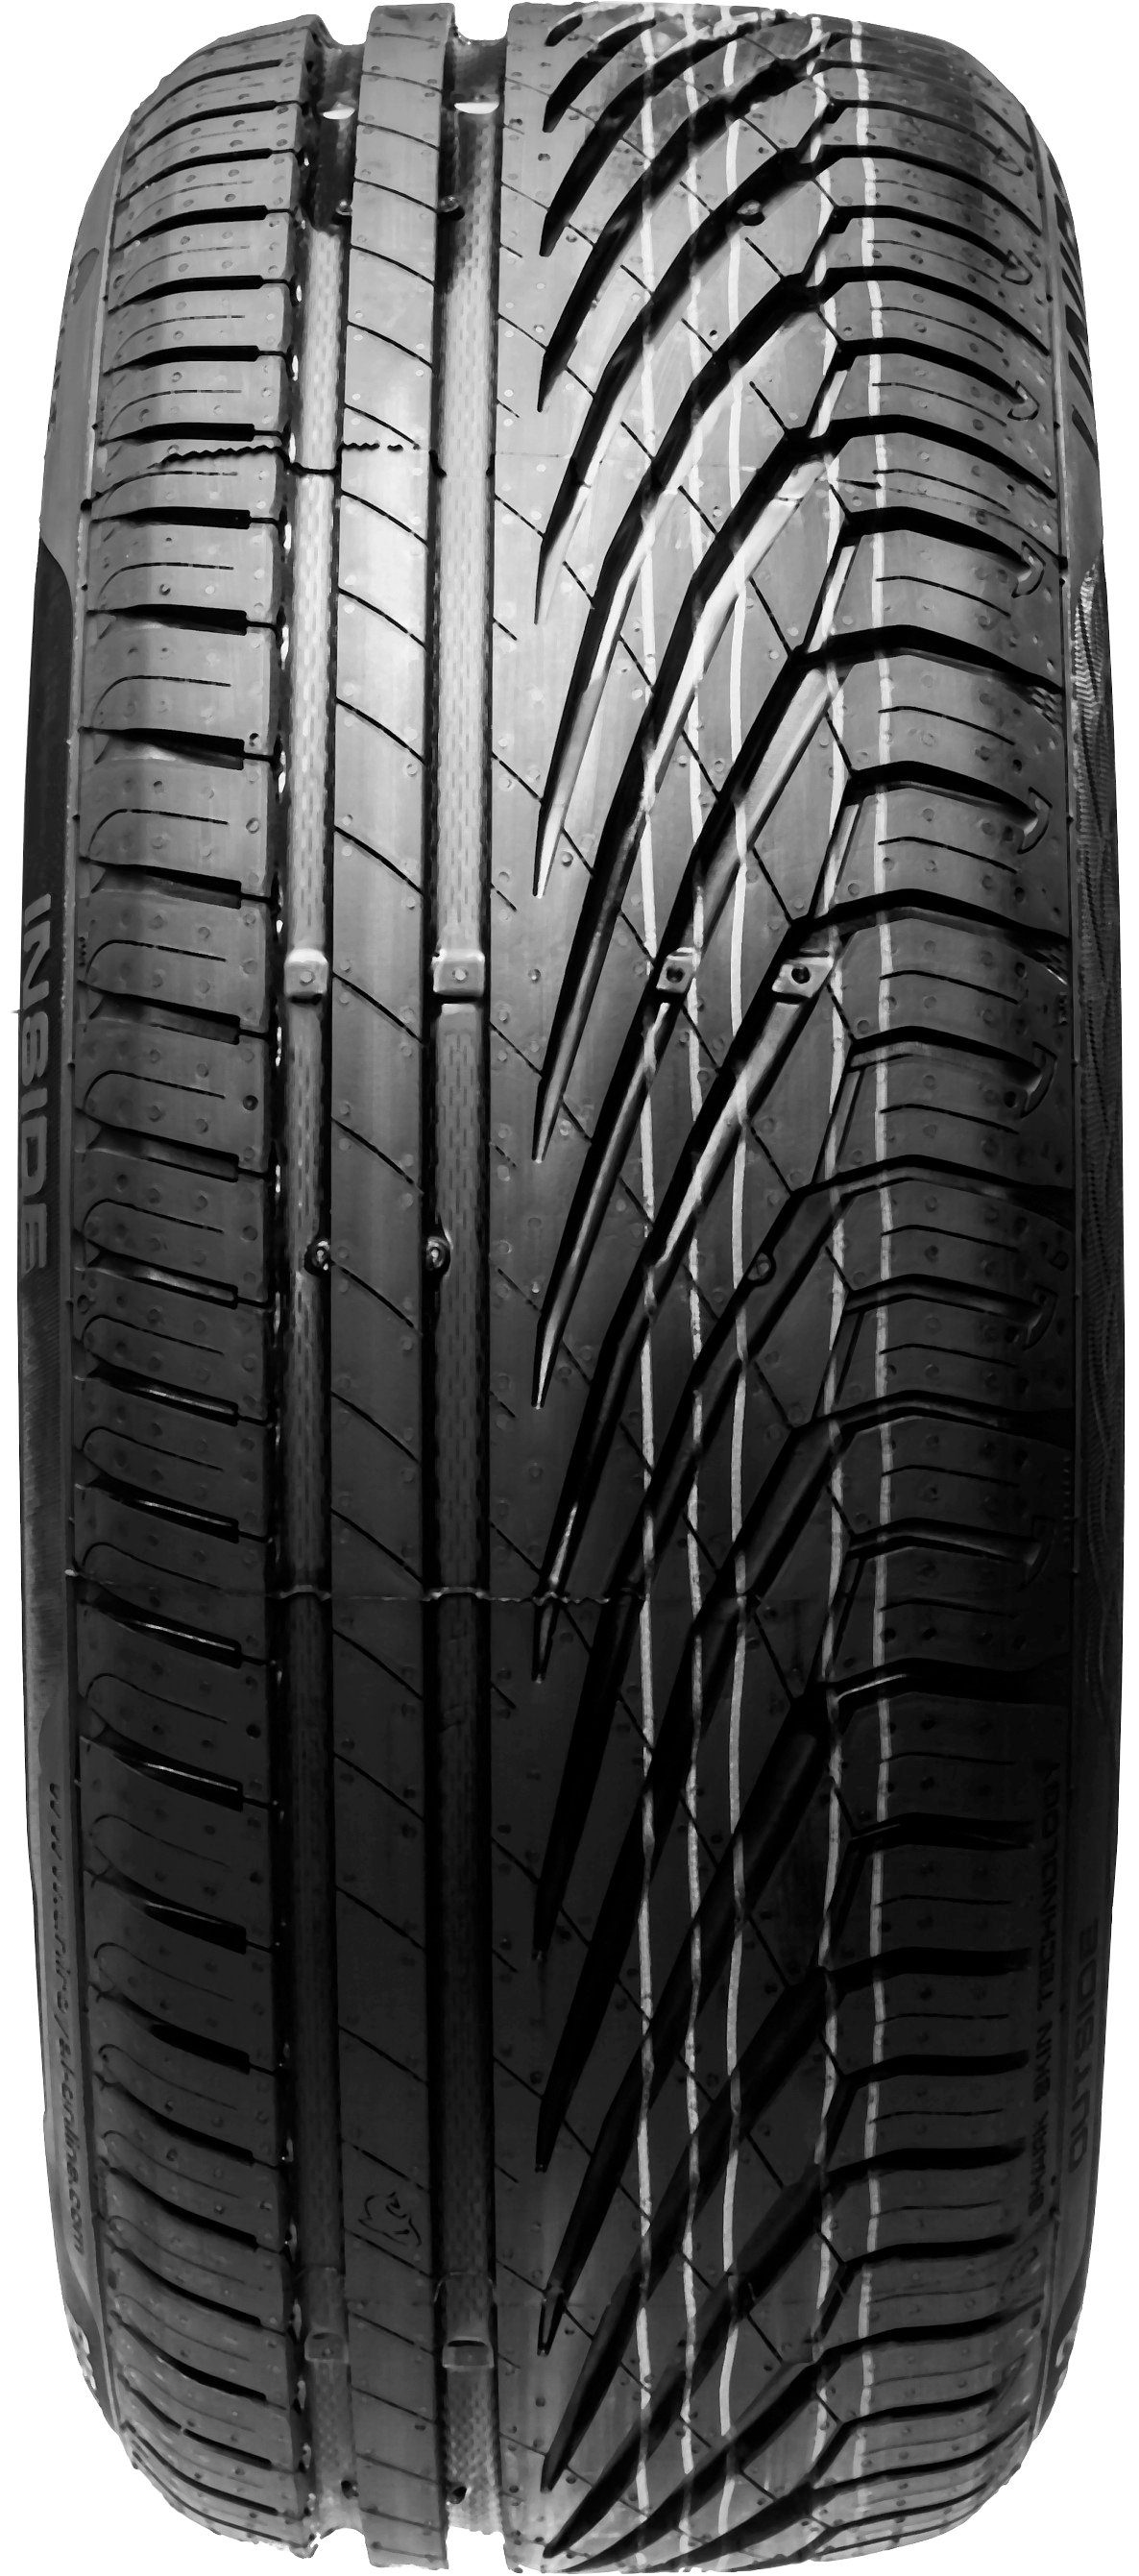 UNIROYAL Sommerreifen »RainSport 3«, 225/35 R18 87Y XL